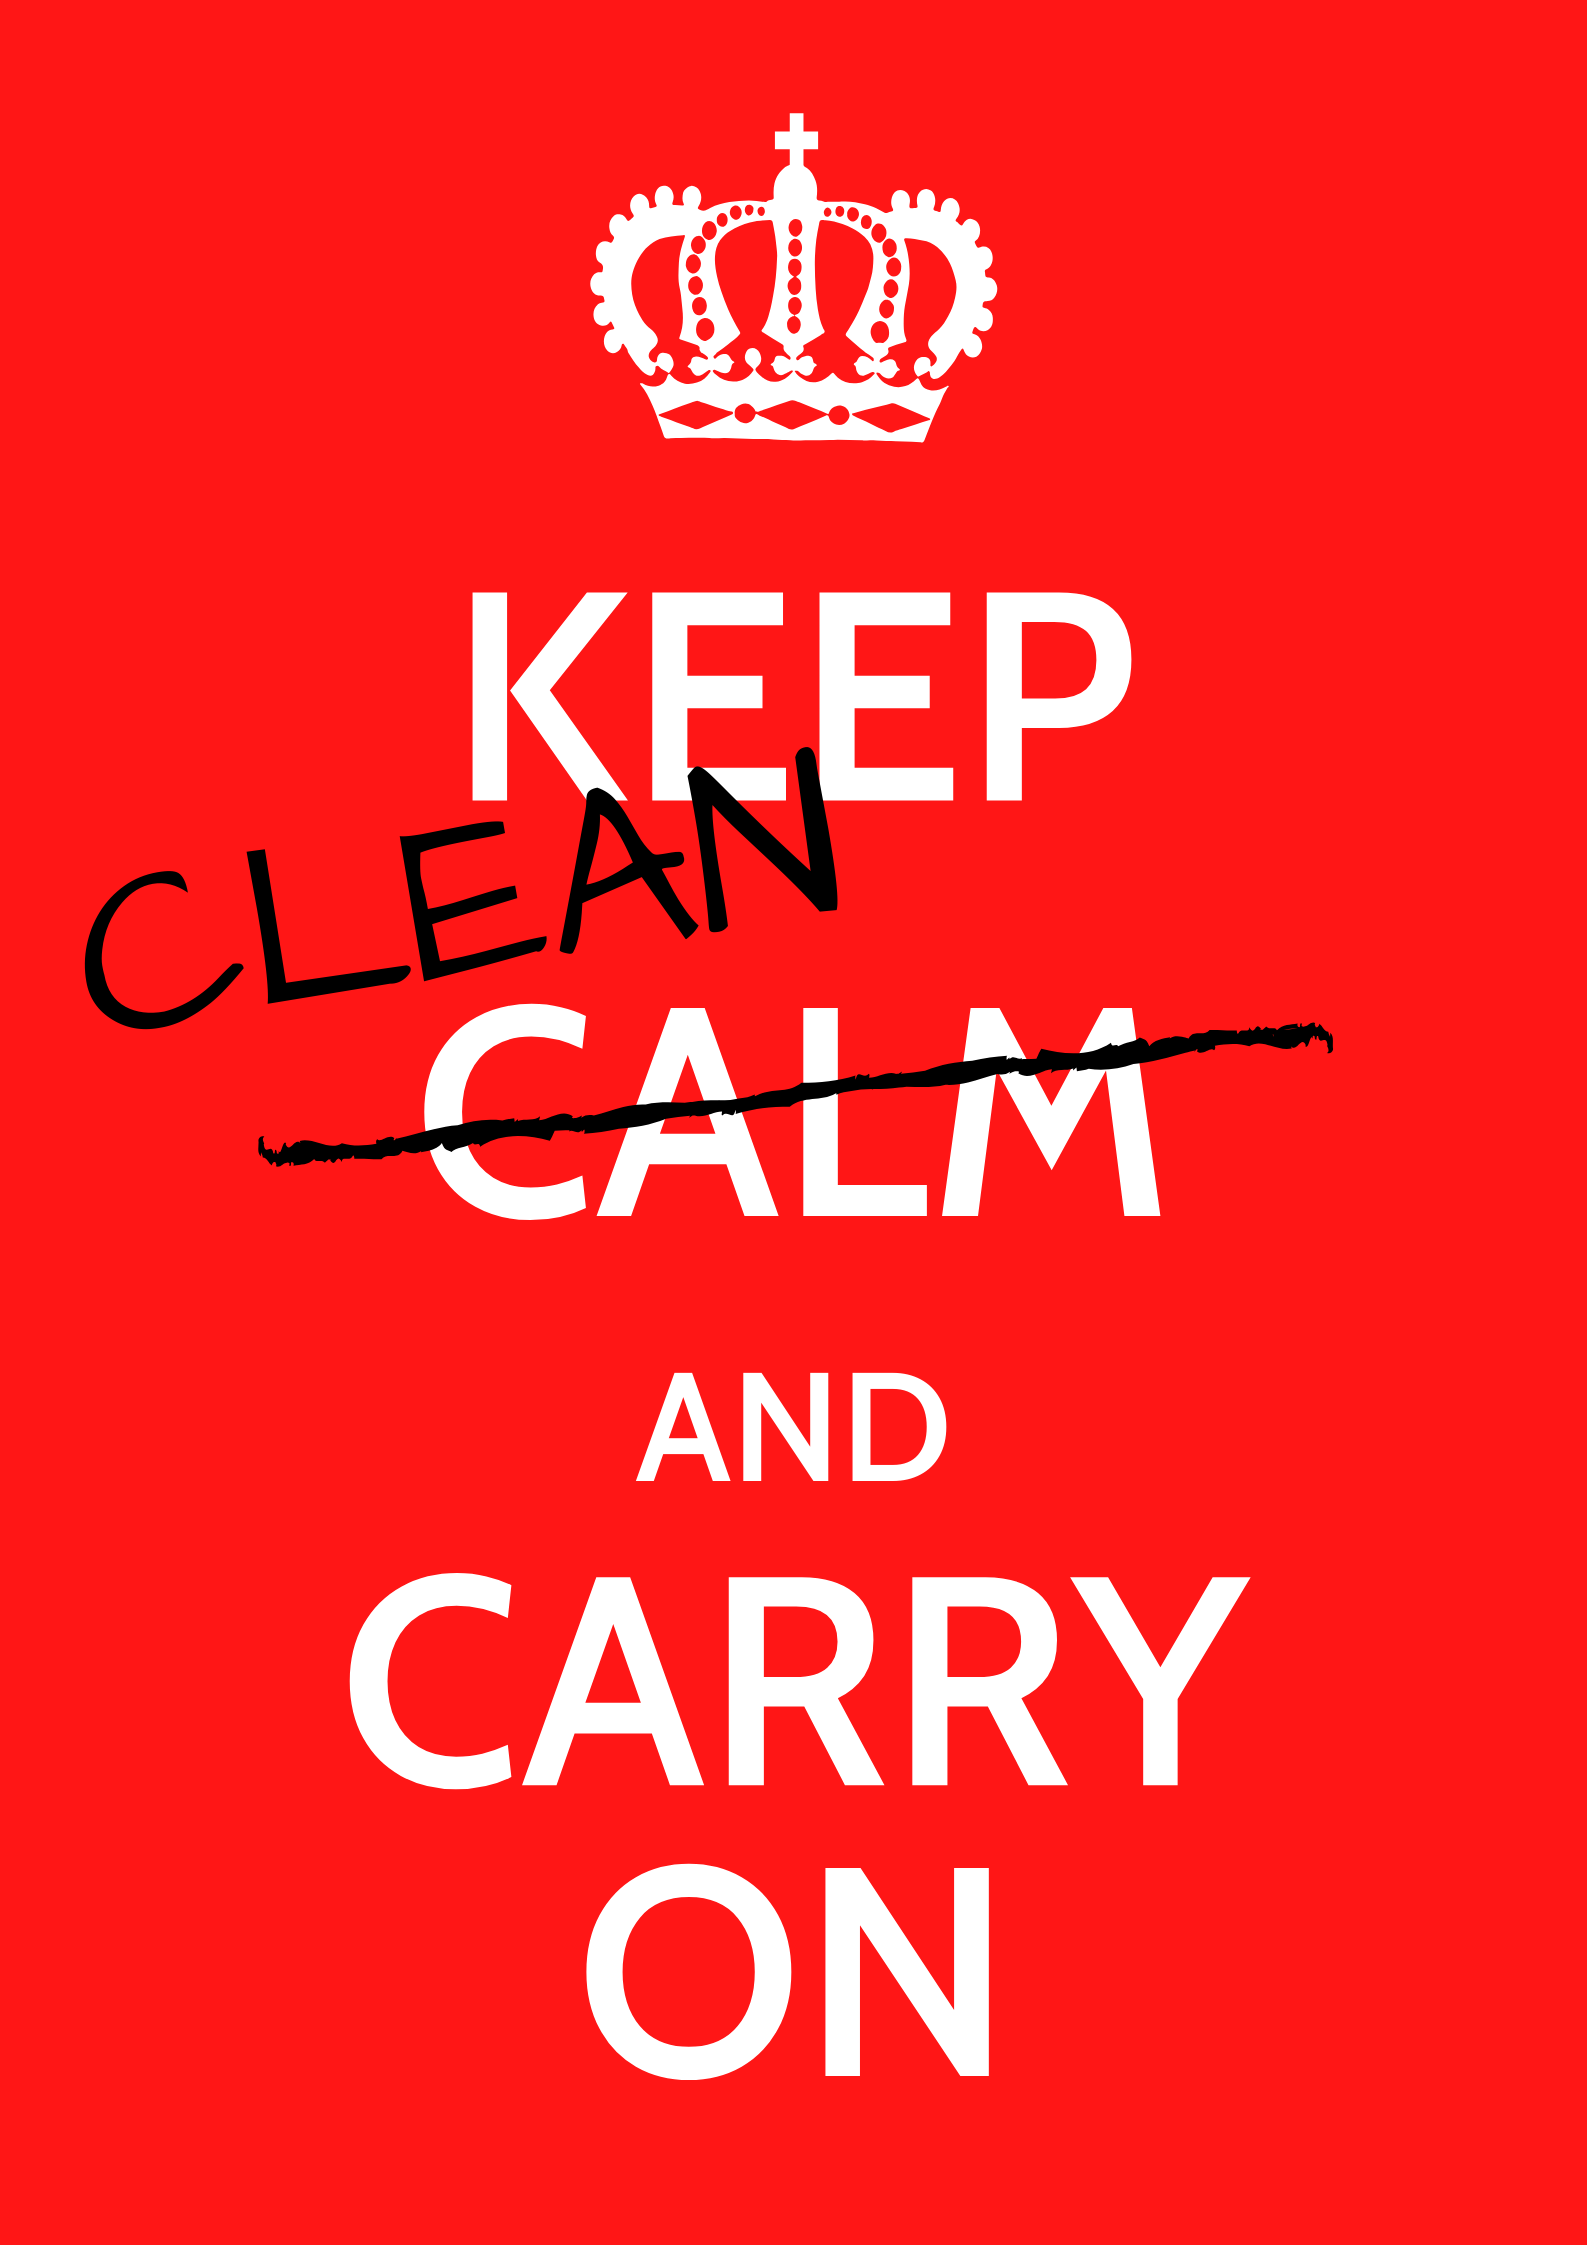 Keep Calm and Carry On Poster with Calm crossed our and replaced by a handwritten Clean. Red background white and black text